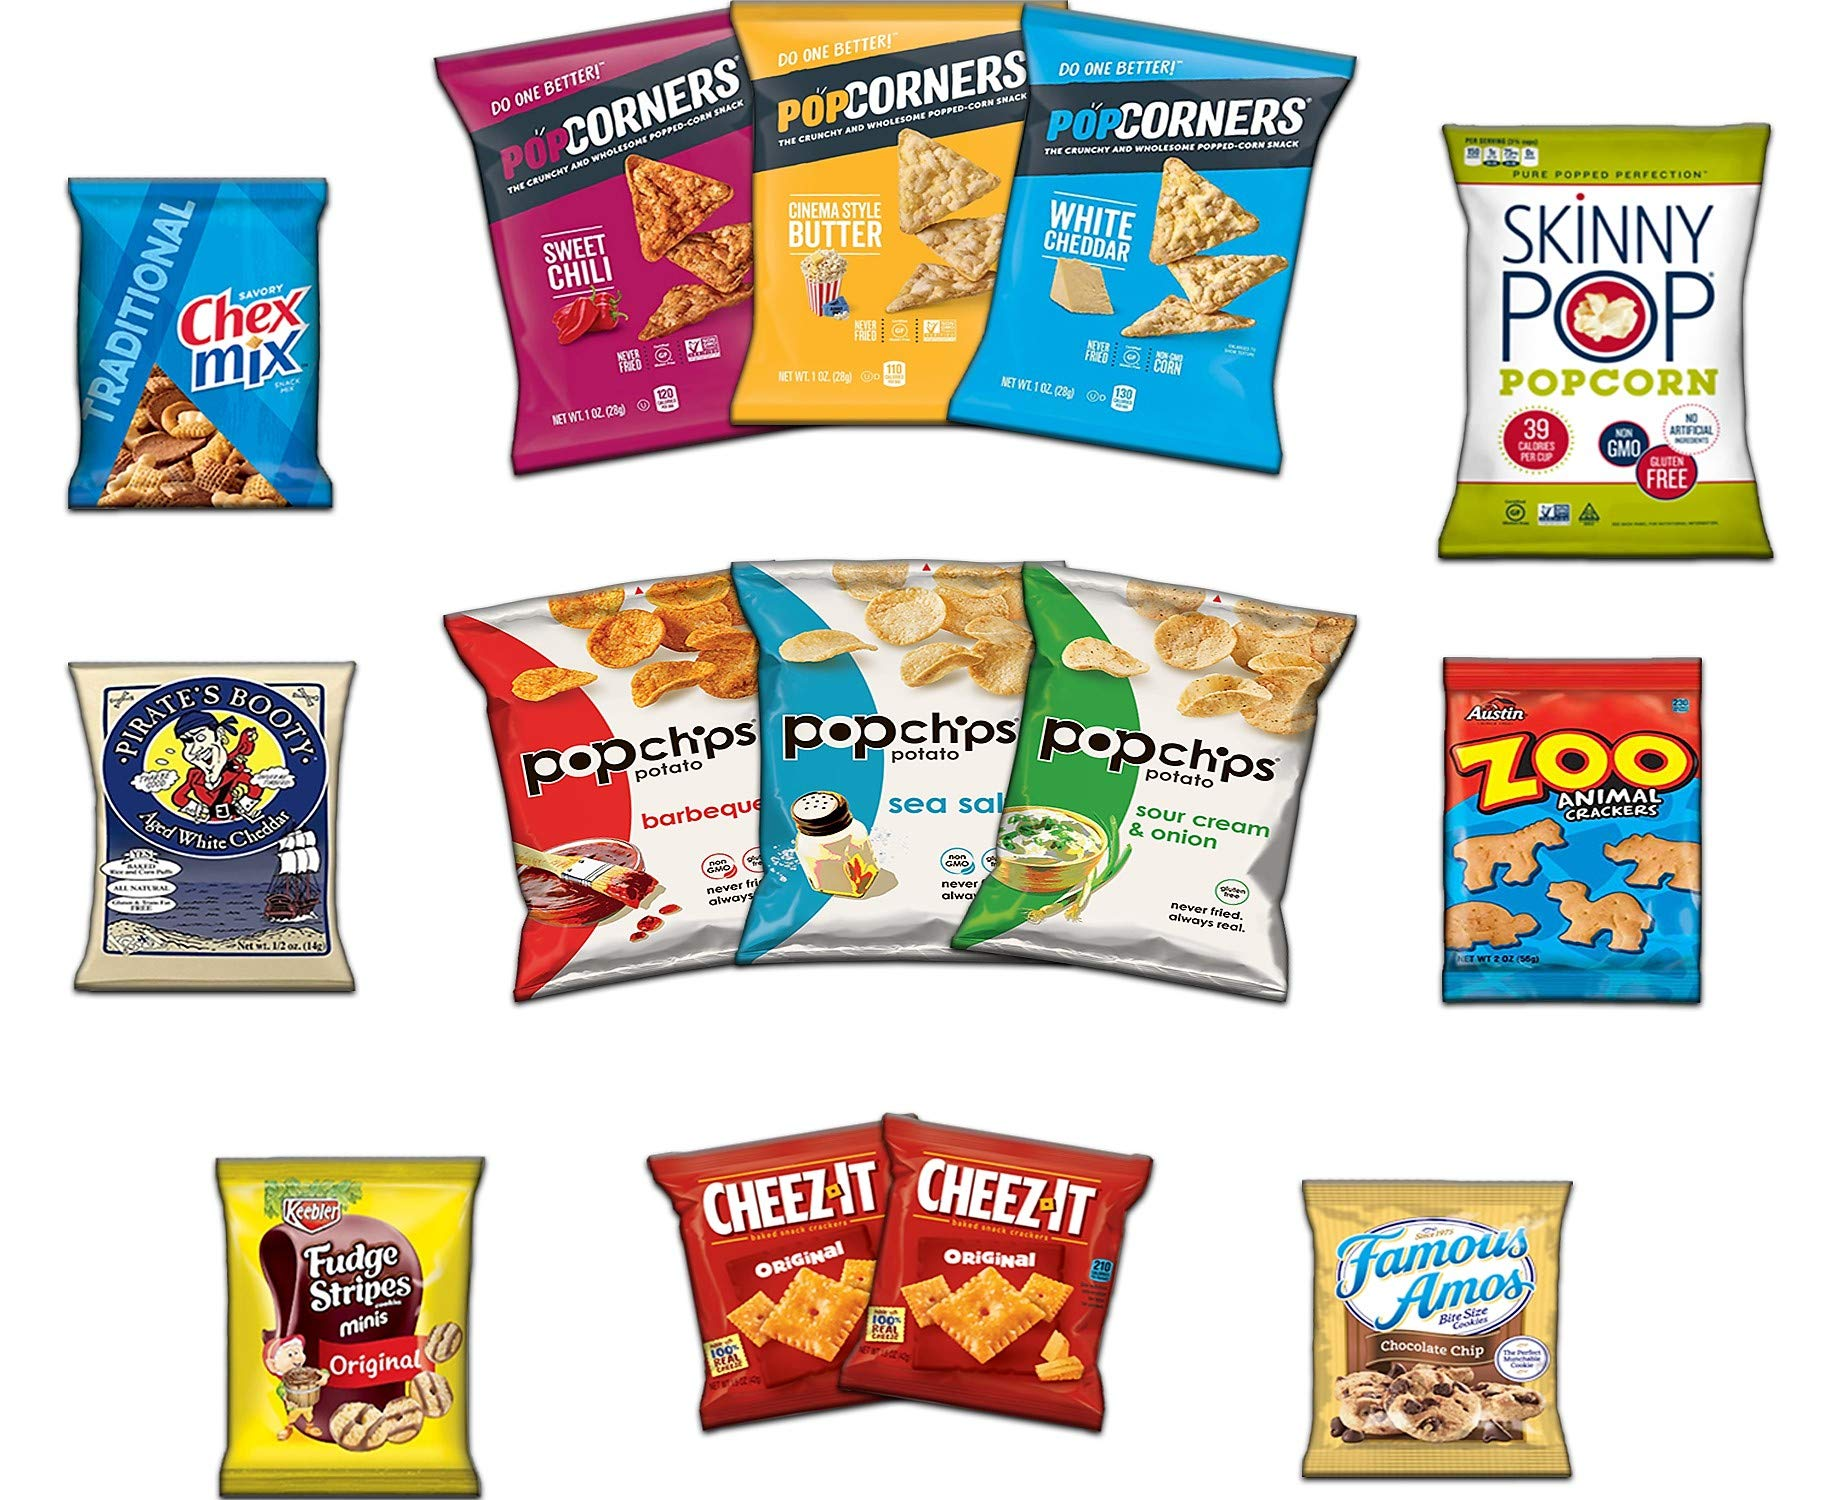 Ultimate Snack Assortment Care Package - Chips, Crackers, Cookies, Nuts, Bars - School, Work, Military or Home (40 Pack) by Custom Treats (Image #1)